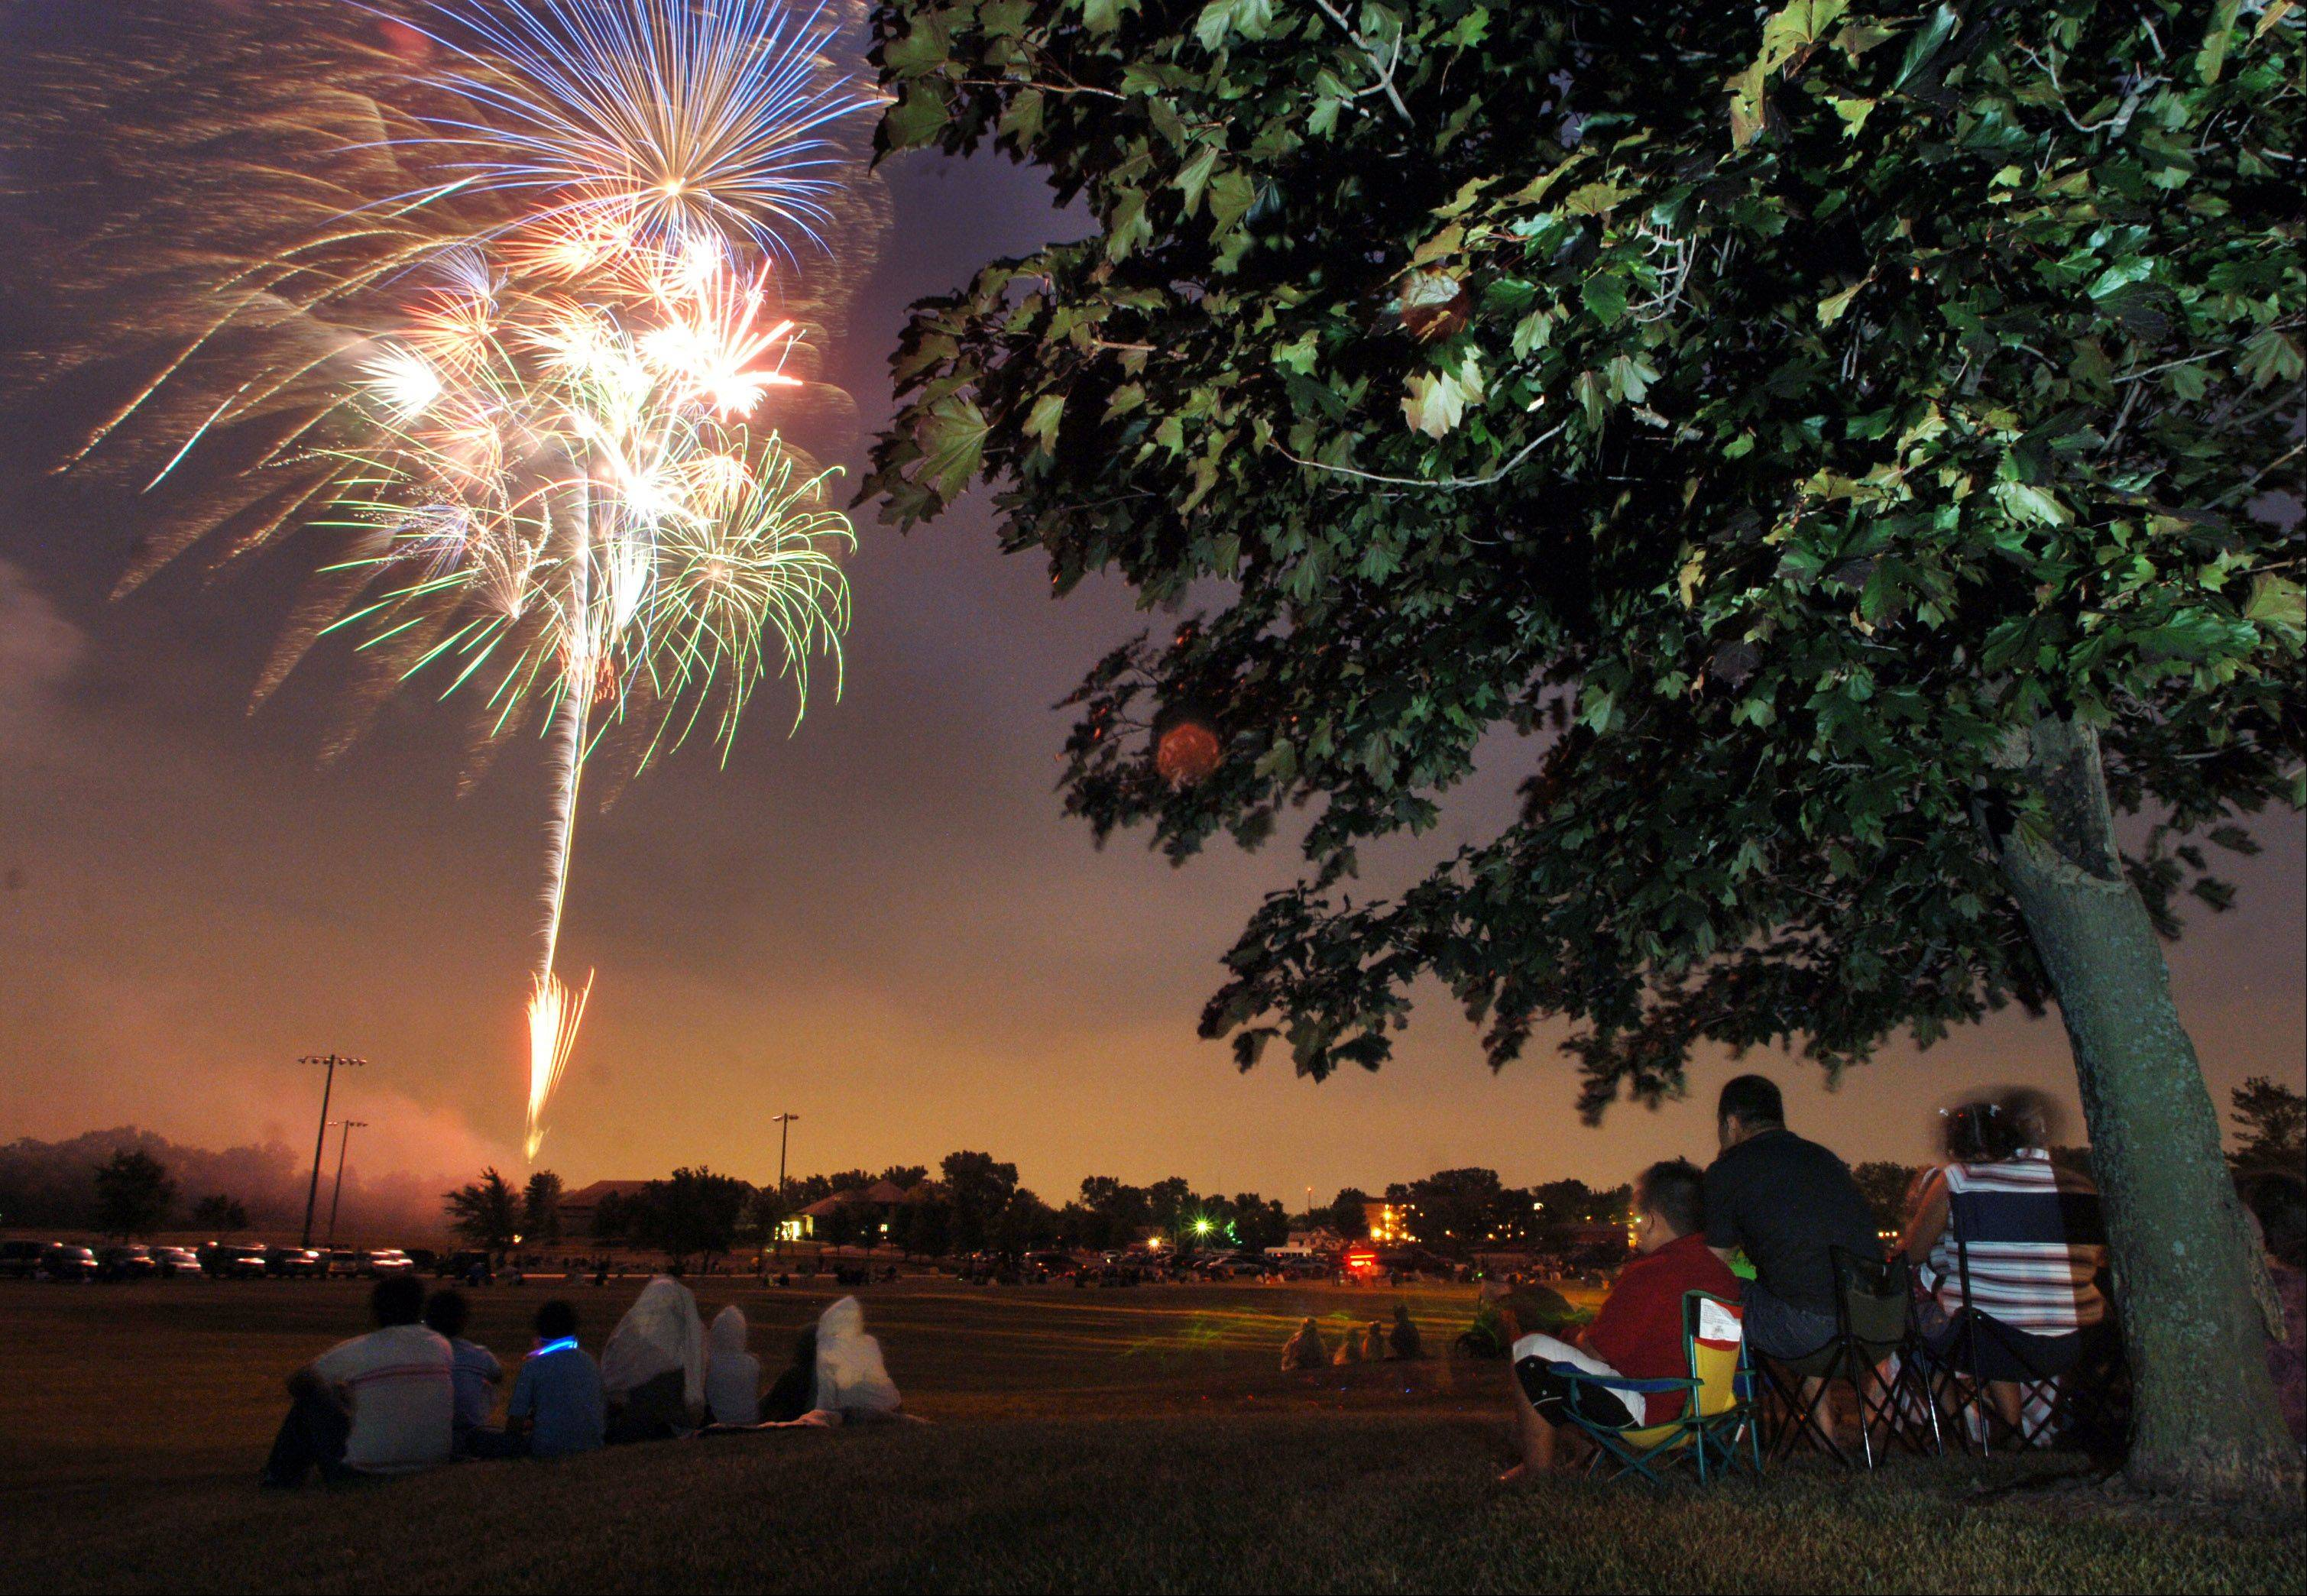 Several suburbs are canceling fireworks shows due to the heat and dry weather -- or damage from storms.